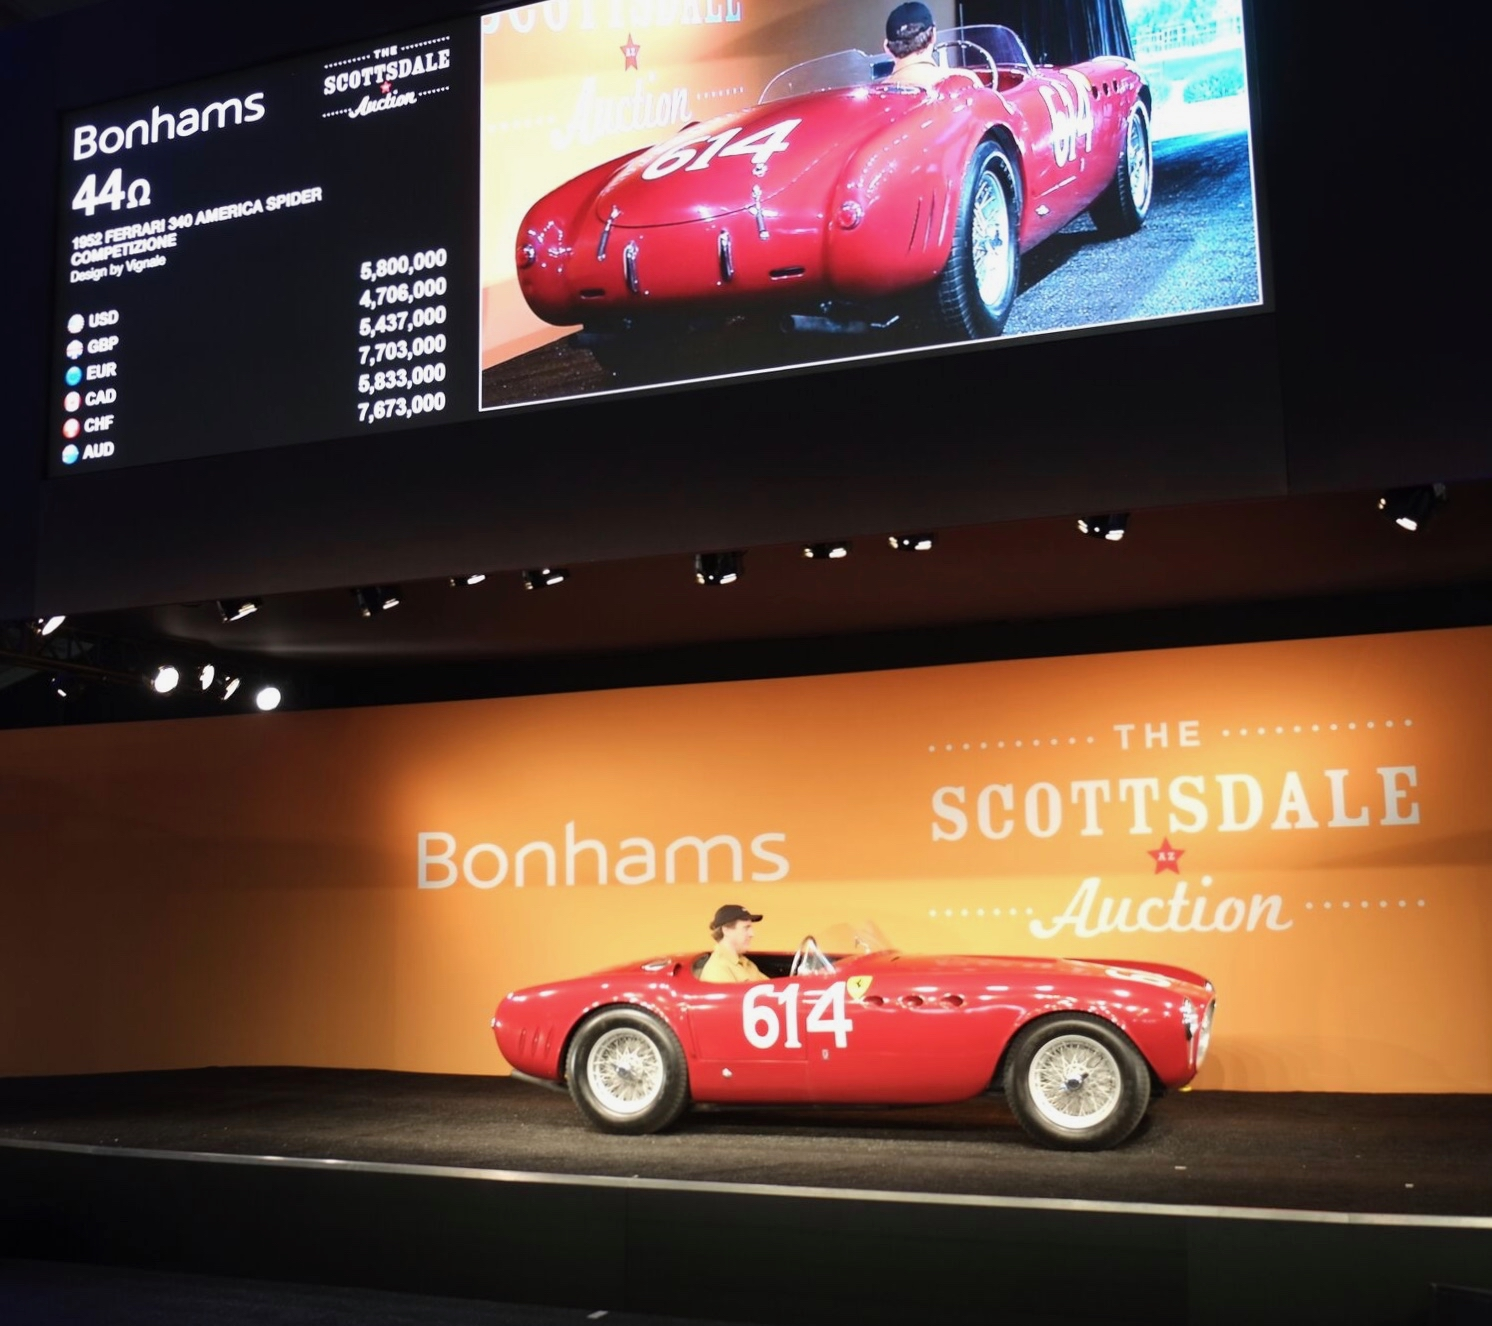 1952 Ferrari 340 America Competizione Spider sells for $6.38 million at Bonhams, which more than doubled its 2016 sales total Thursday | Andy Reid photos